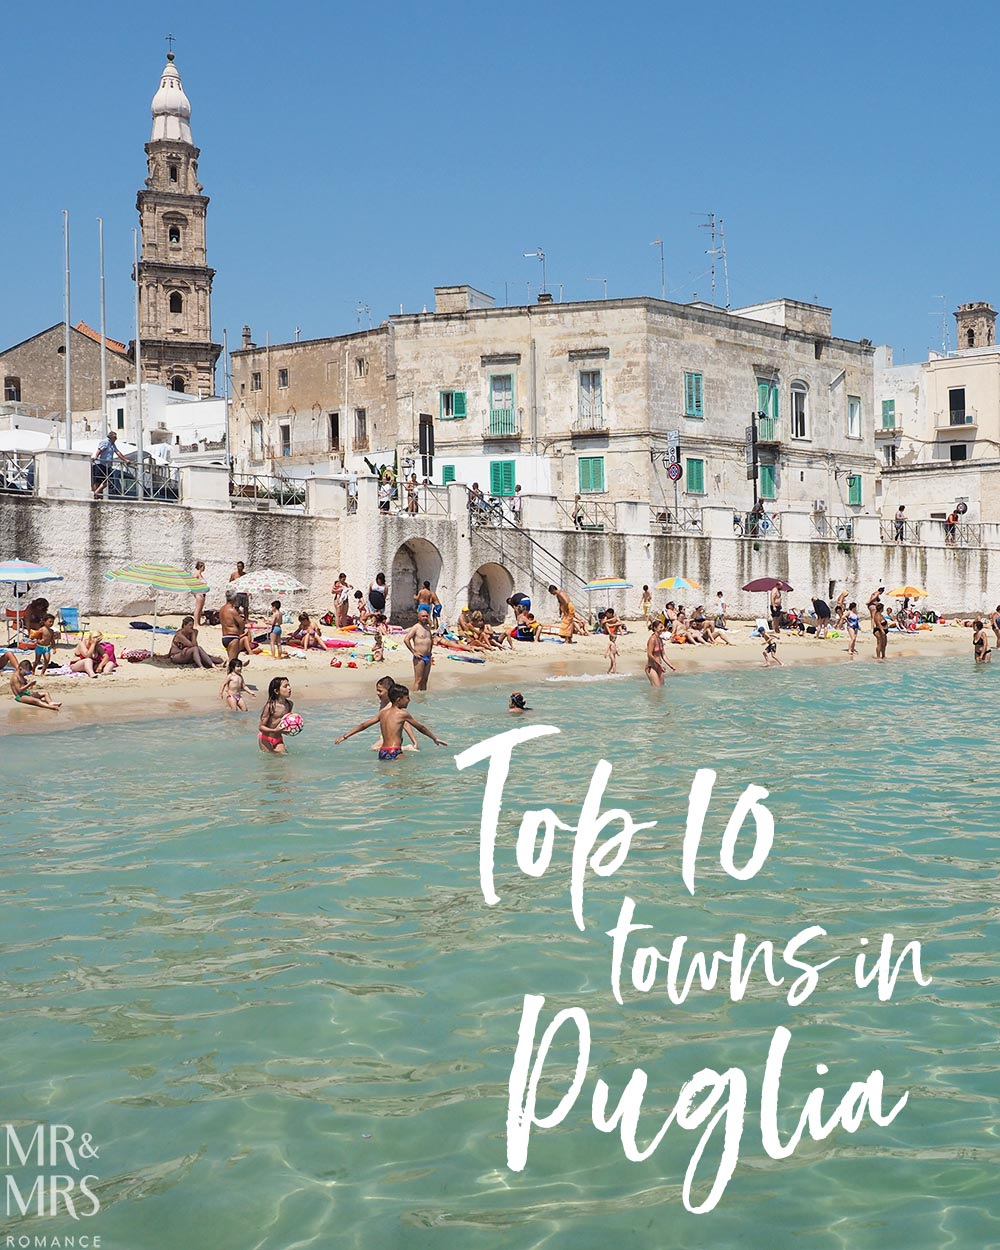 Top 10 towns of Puglia, Italy